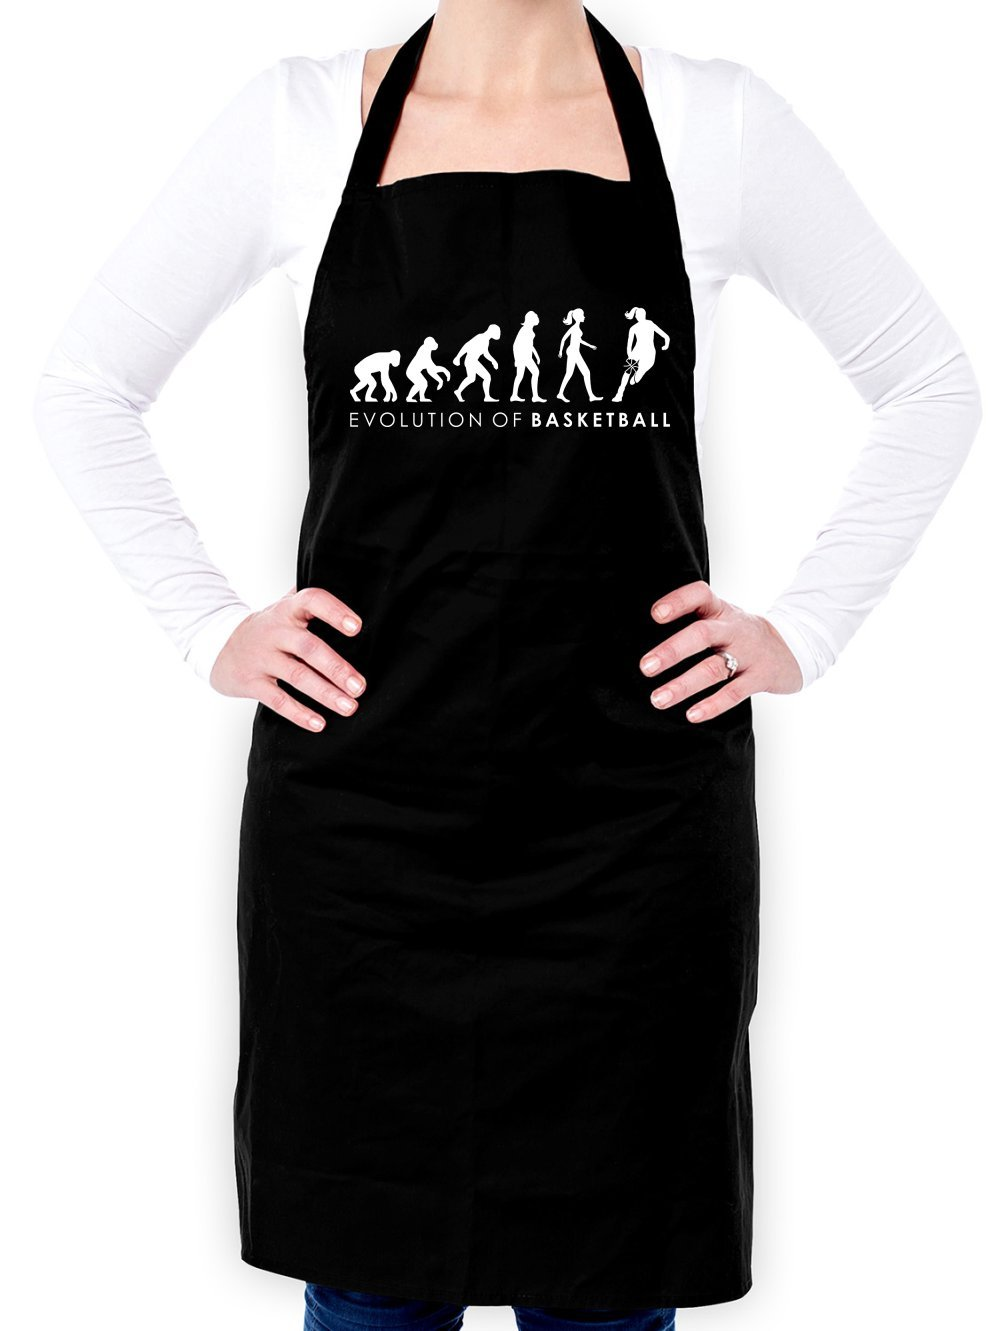 Evolution of Woman - Basketball - Unisex Fit Apron - Black - One Size